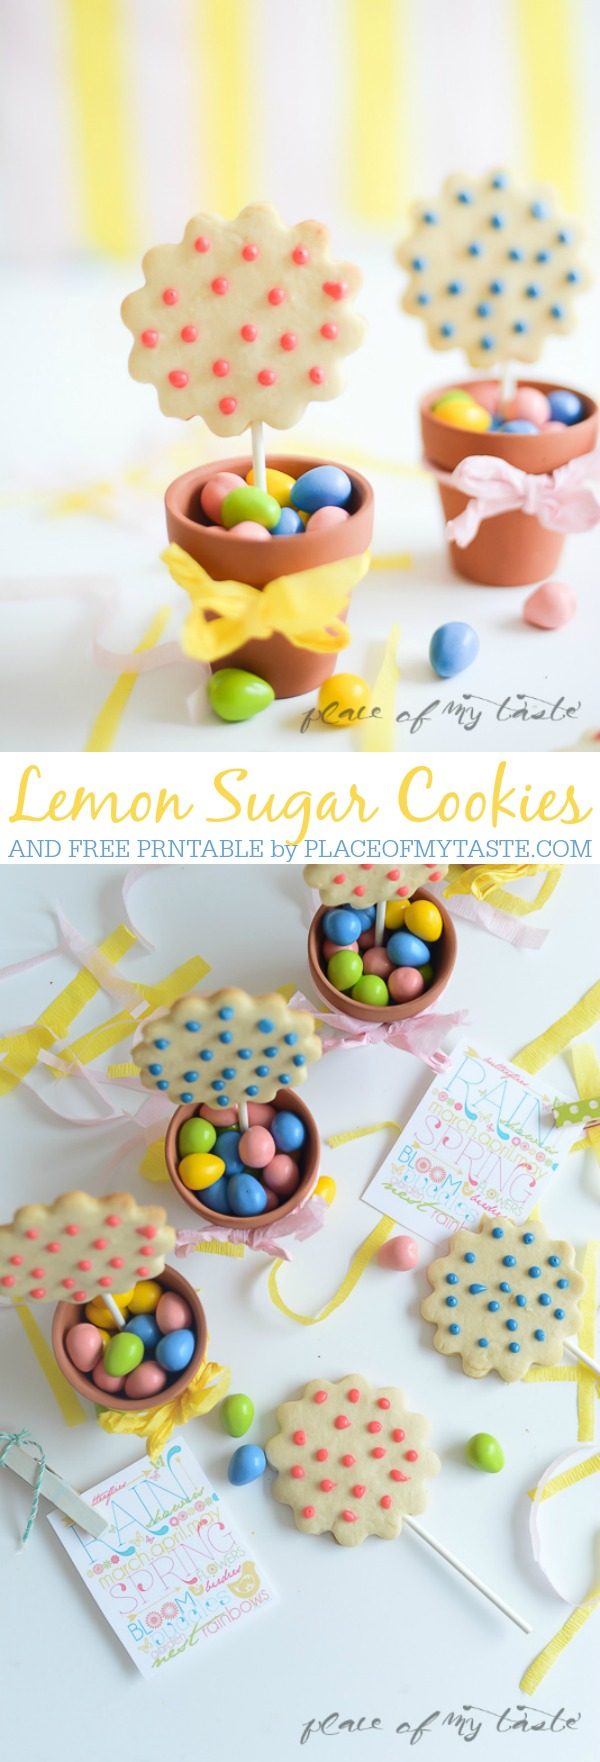 Lemon Sugar Cookies and Free Printable at the36thavenue.com